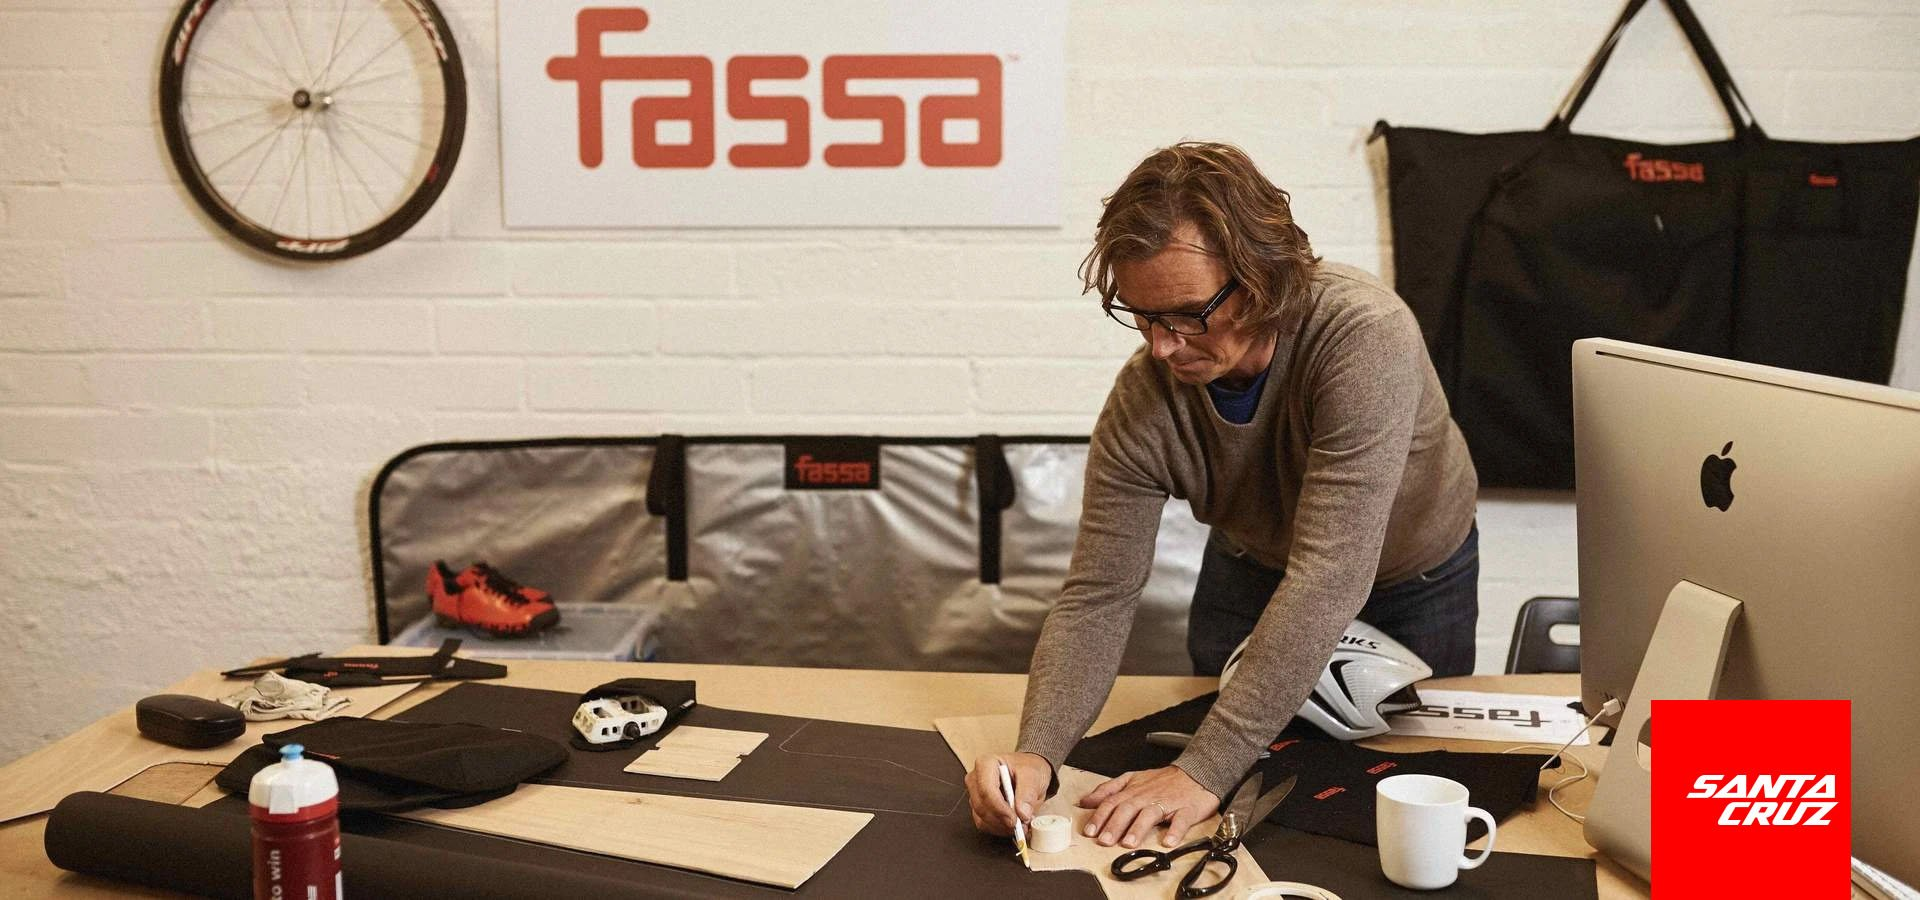 Fassa Cycling Products. Fassa Bicycle Protection - Free UK delivery